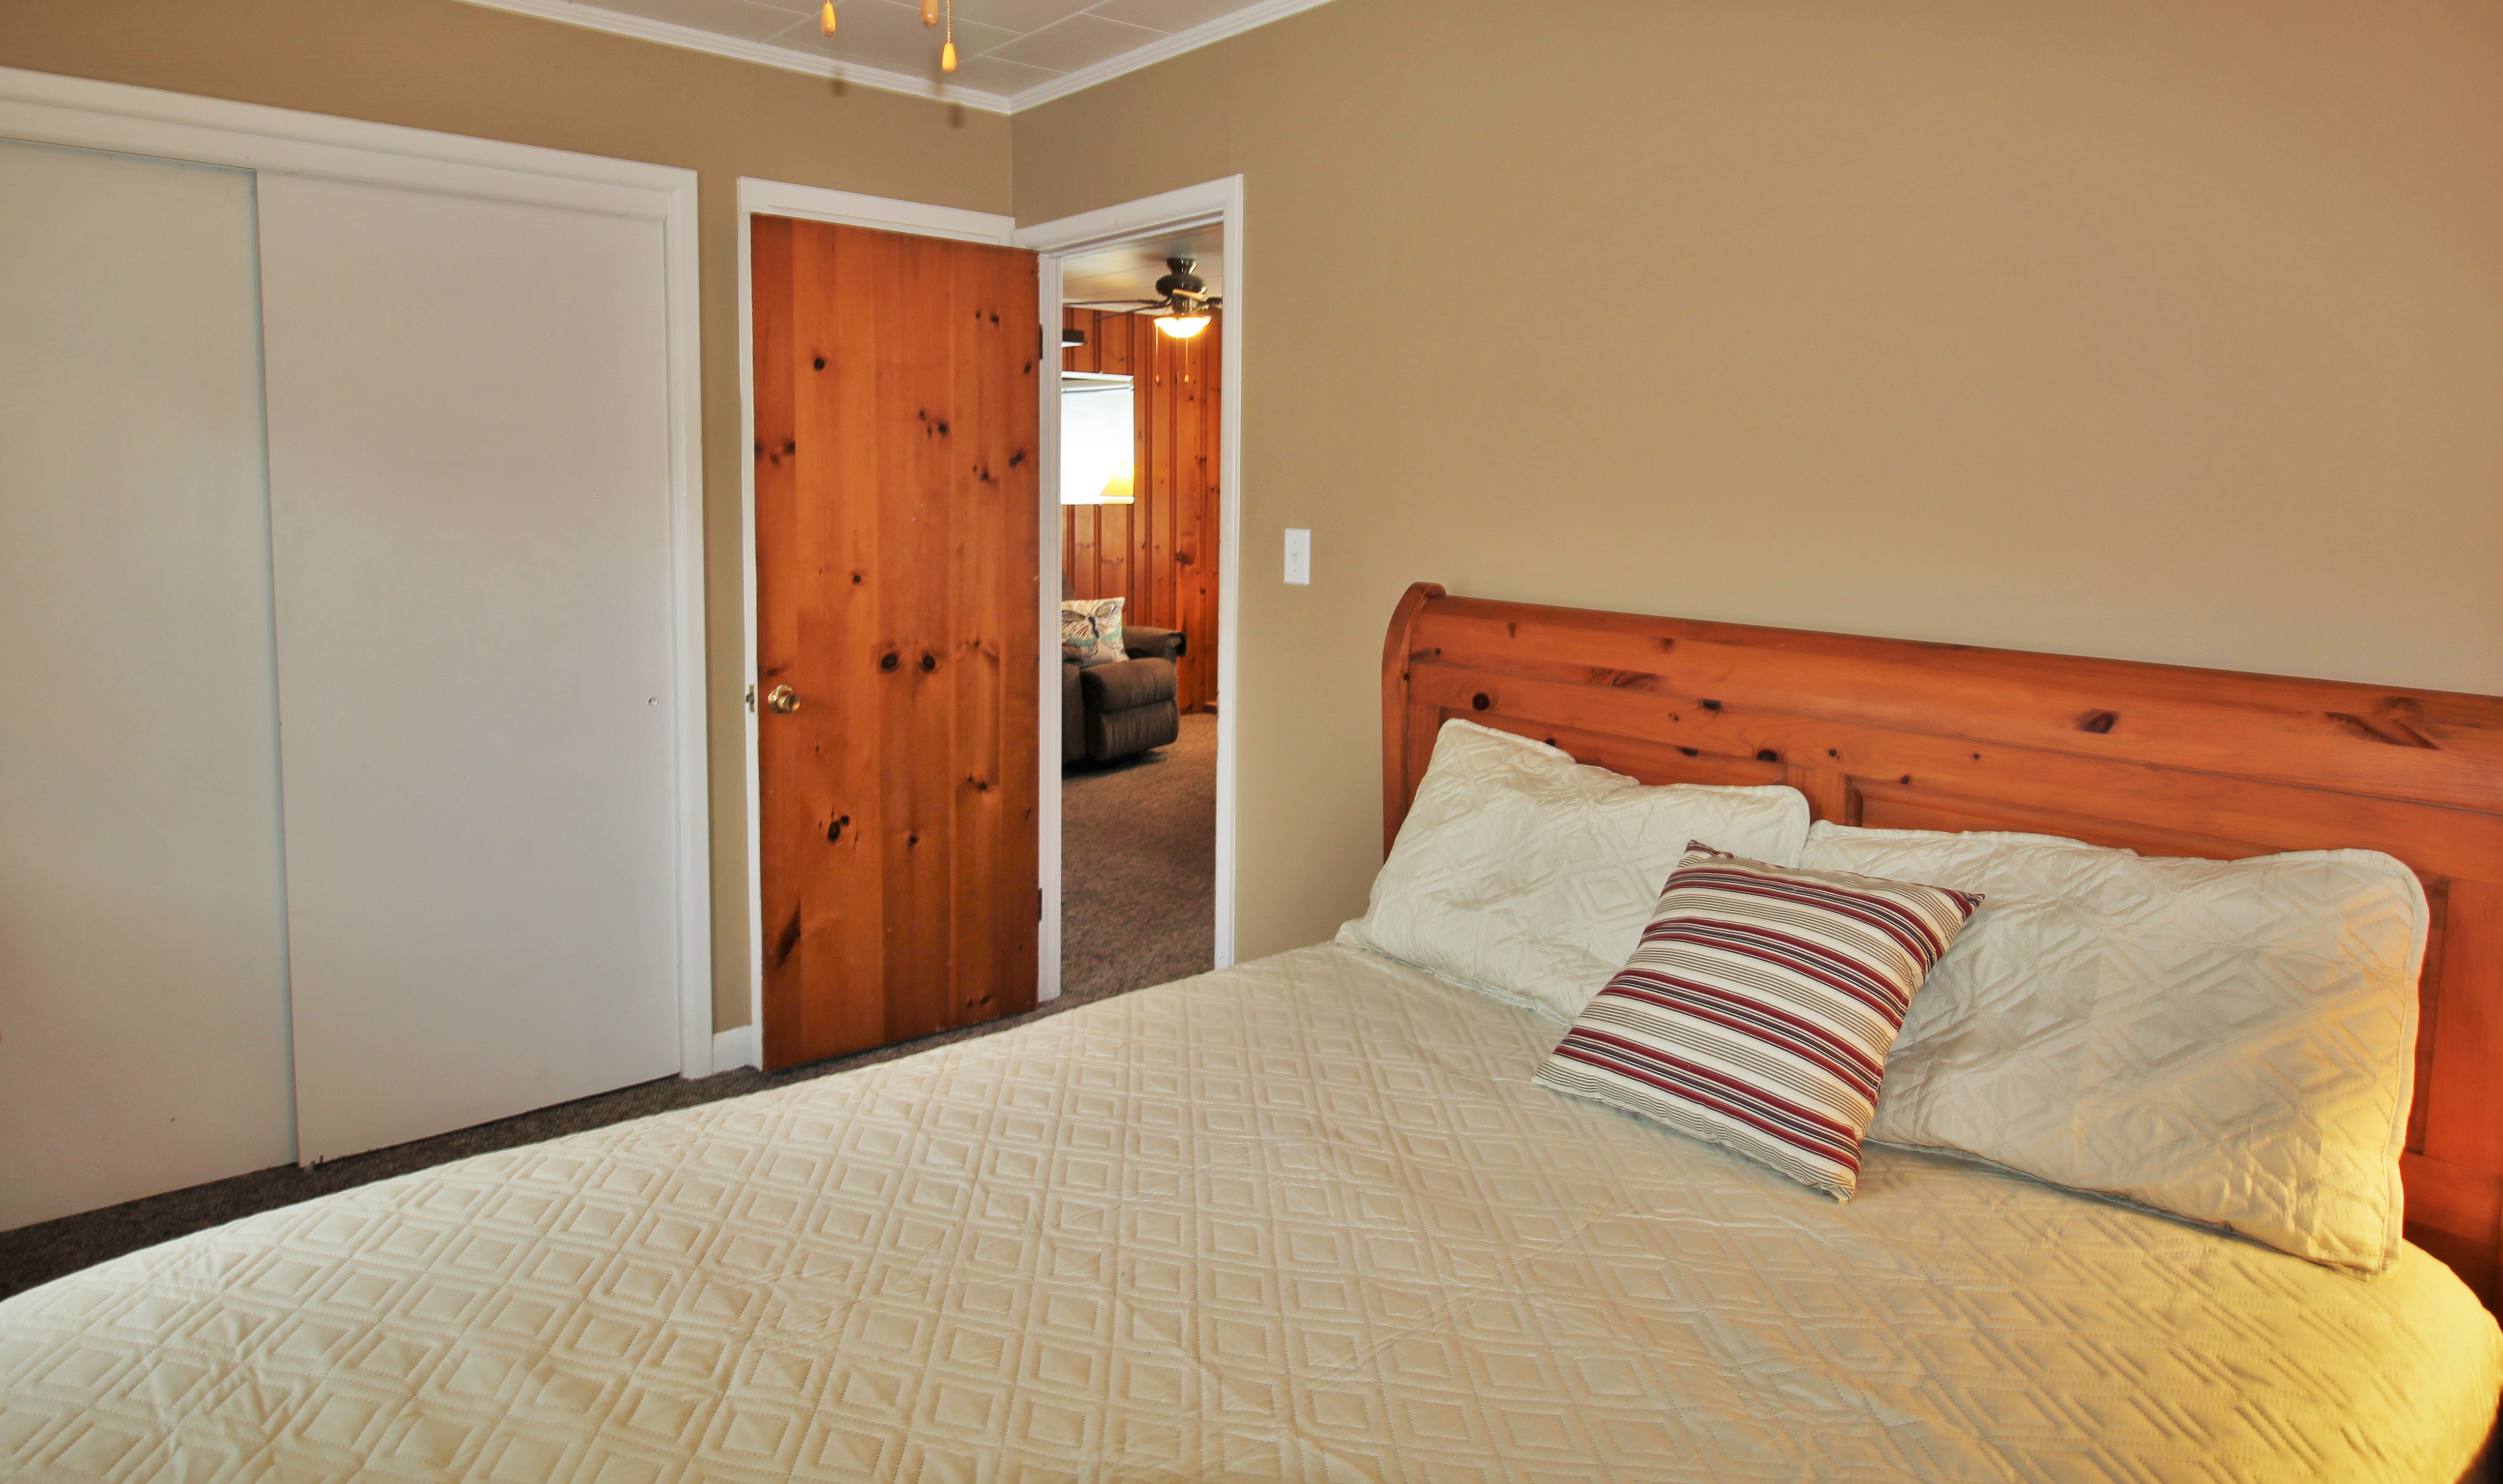 Cambridge Cottage - Bedroom 1 Queen Bed - Crystal Beach Cottage Rentals - Lake Erie